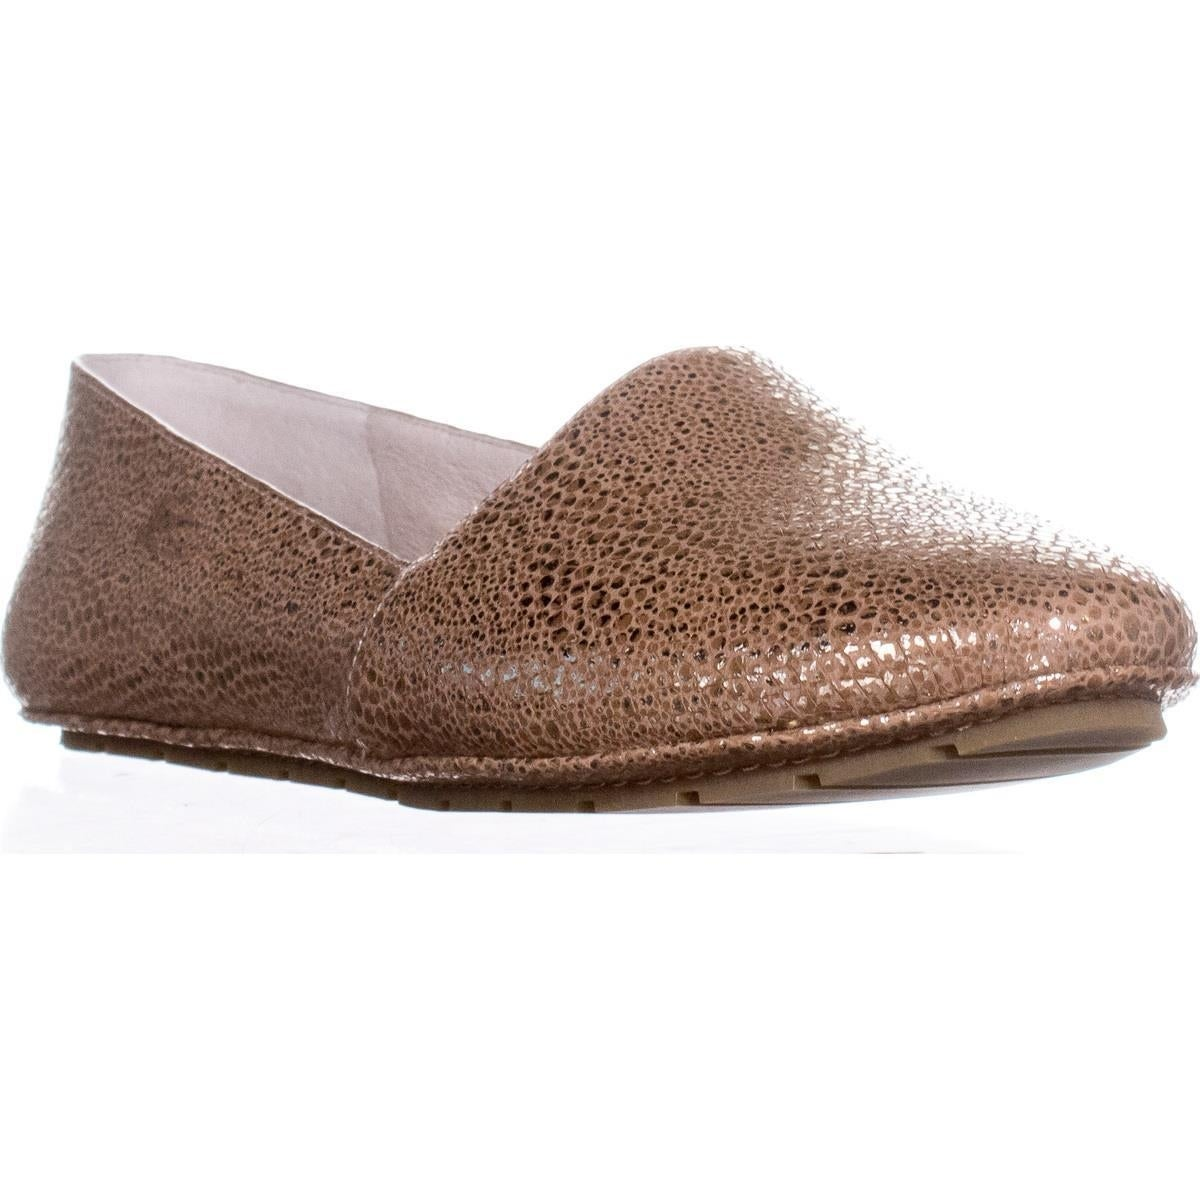 cf421139618 Kenneth cole new york jayden loafers rose gold free shipping today jpg  1200x1200 Rose gold loafers